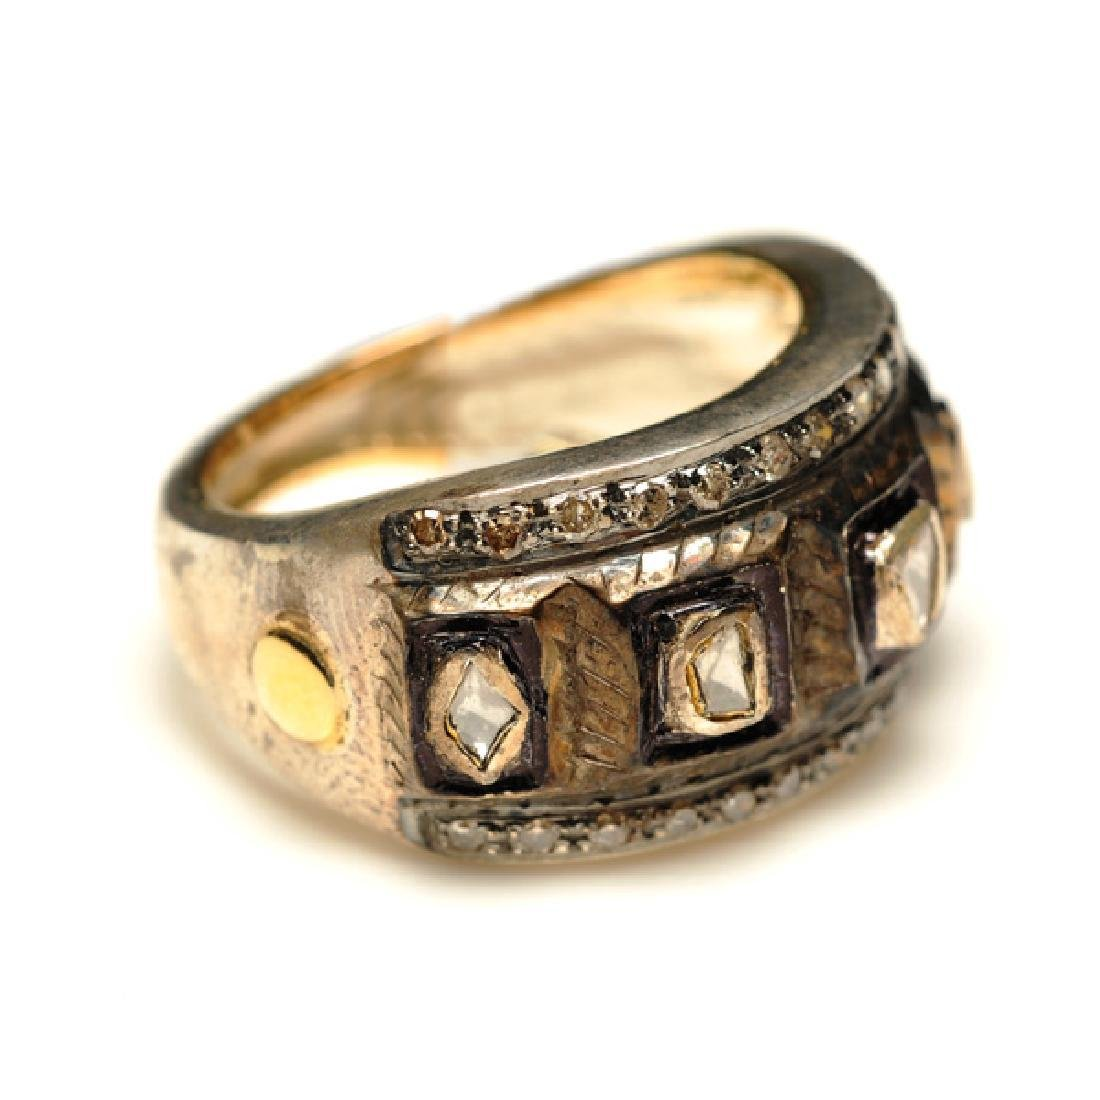 14K Gold Sterling Silver Pave Diamond Ring, .53ctw - 2